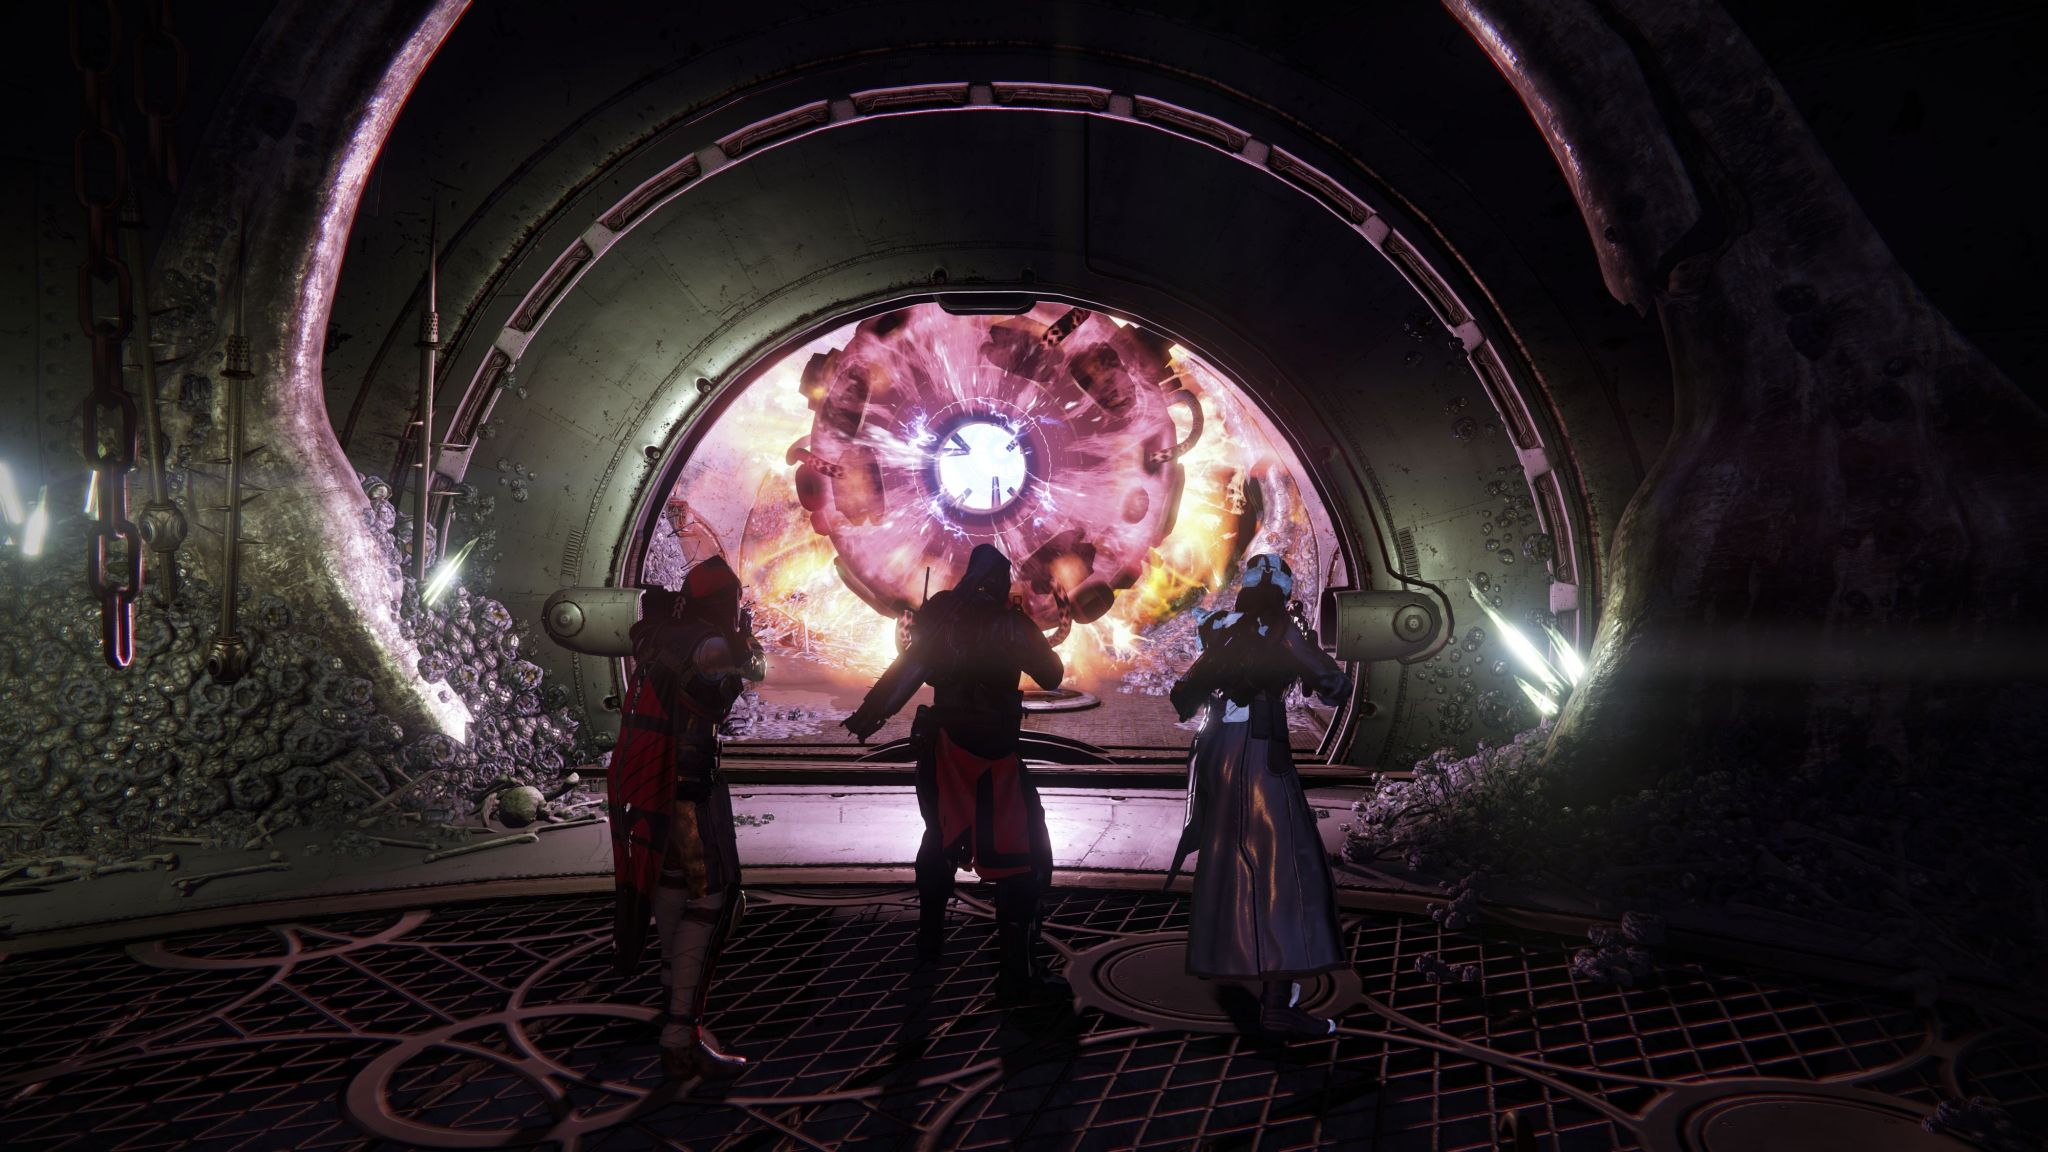 Destiny house of wolves will not have a raid what do you think